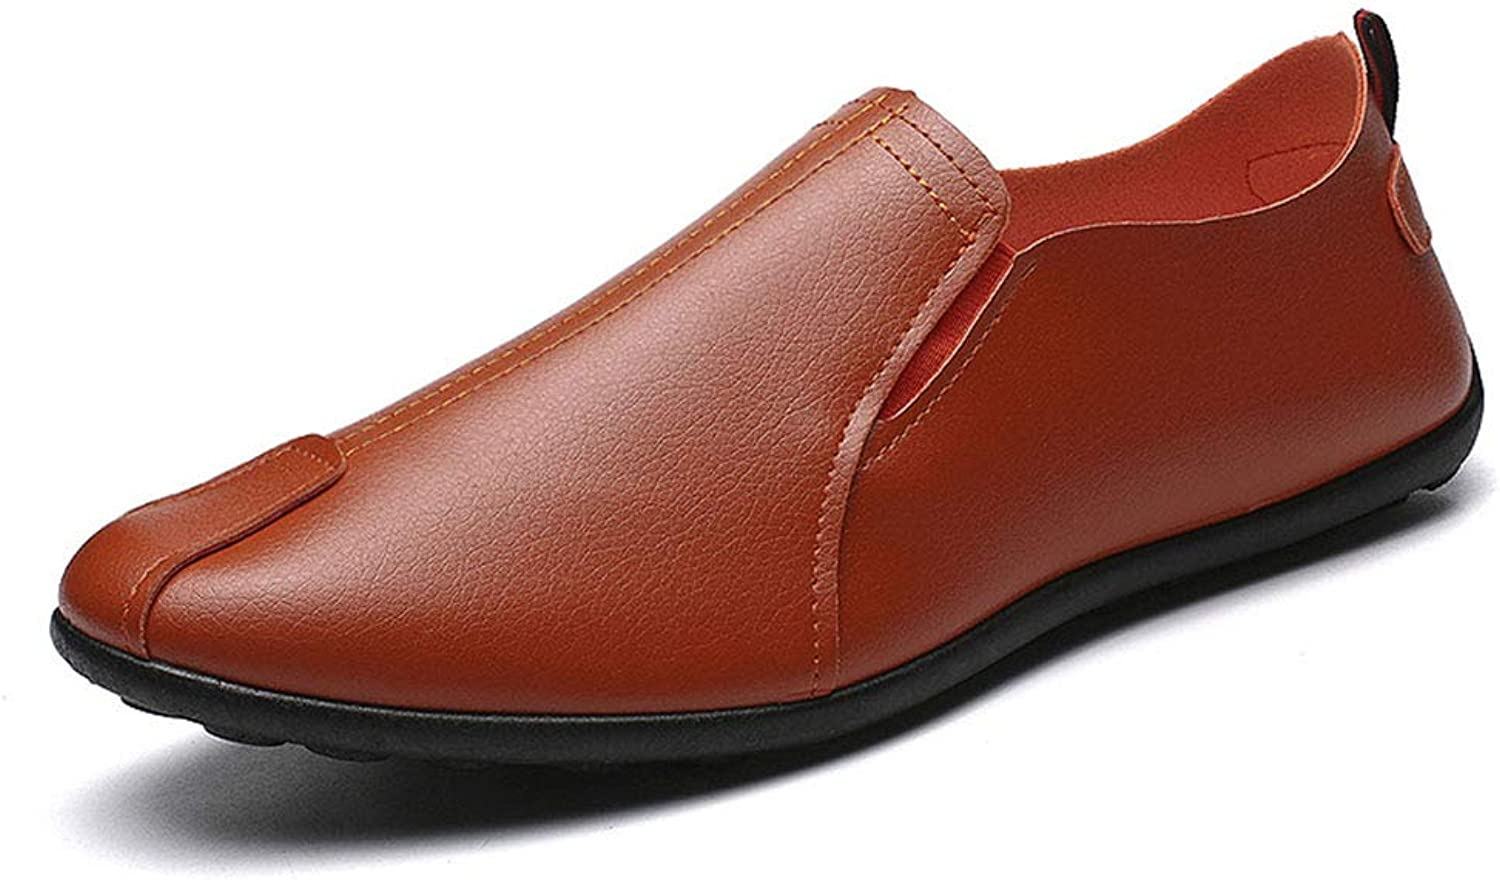 Gfphfm Herren es Loafers & Slip-Ons, 2019 New New New Casual Leather schuhe Fashion Flat Schuhe Komfort Schuhe Komfort Schuhe,B,41  f74c7c